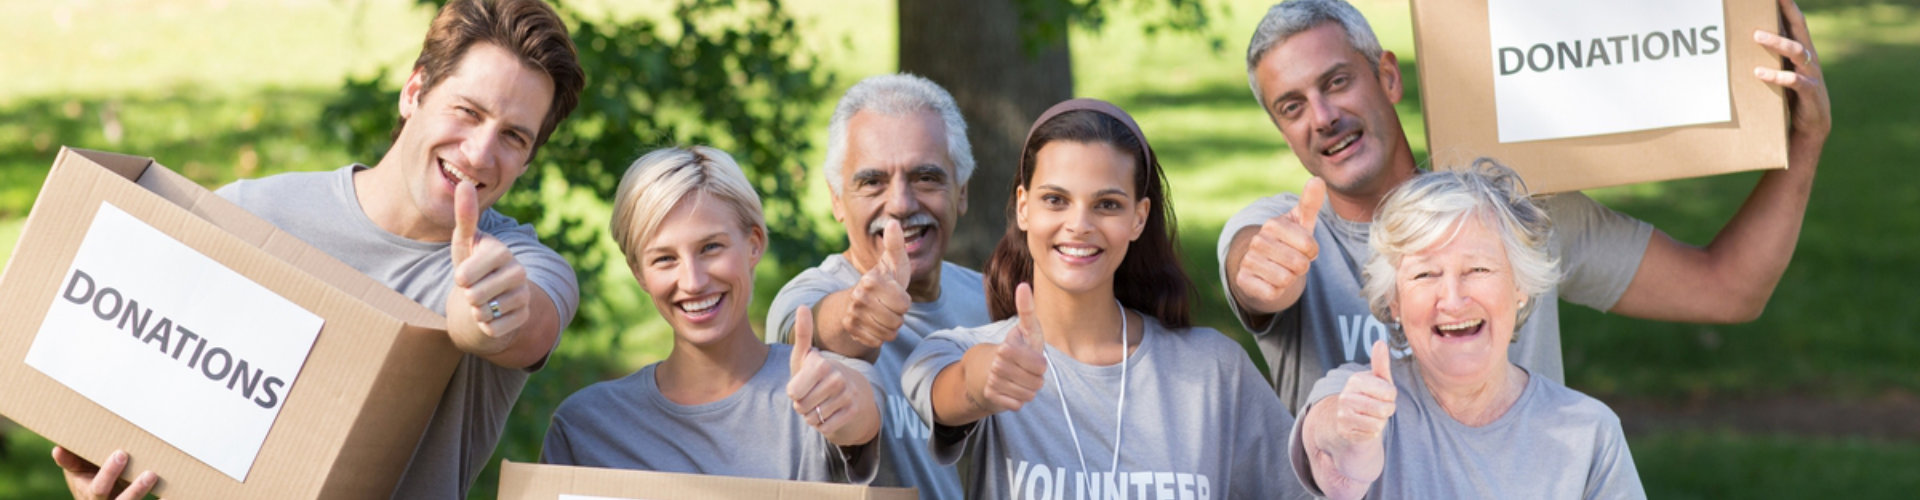 group of volunteer smiling